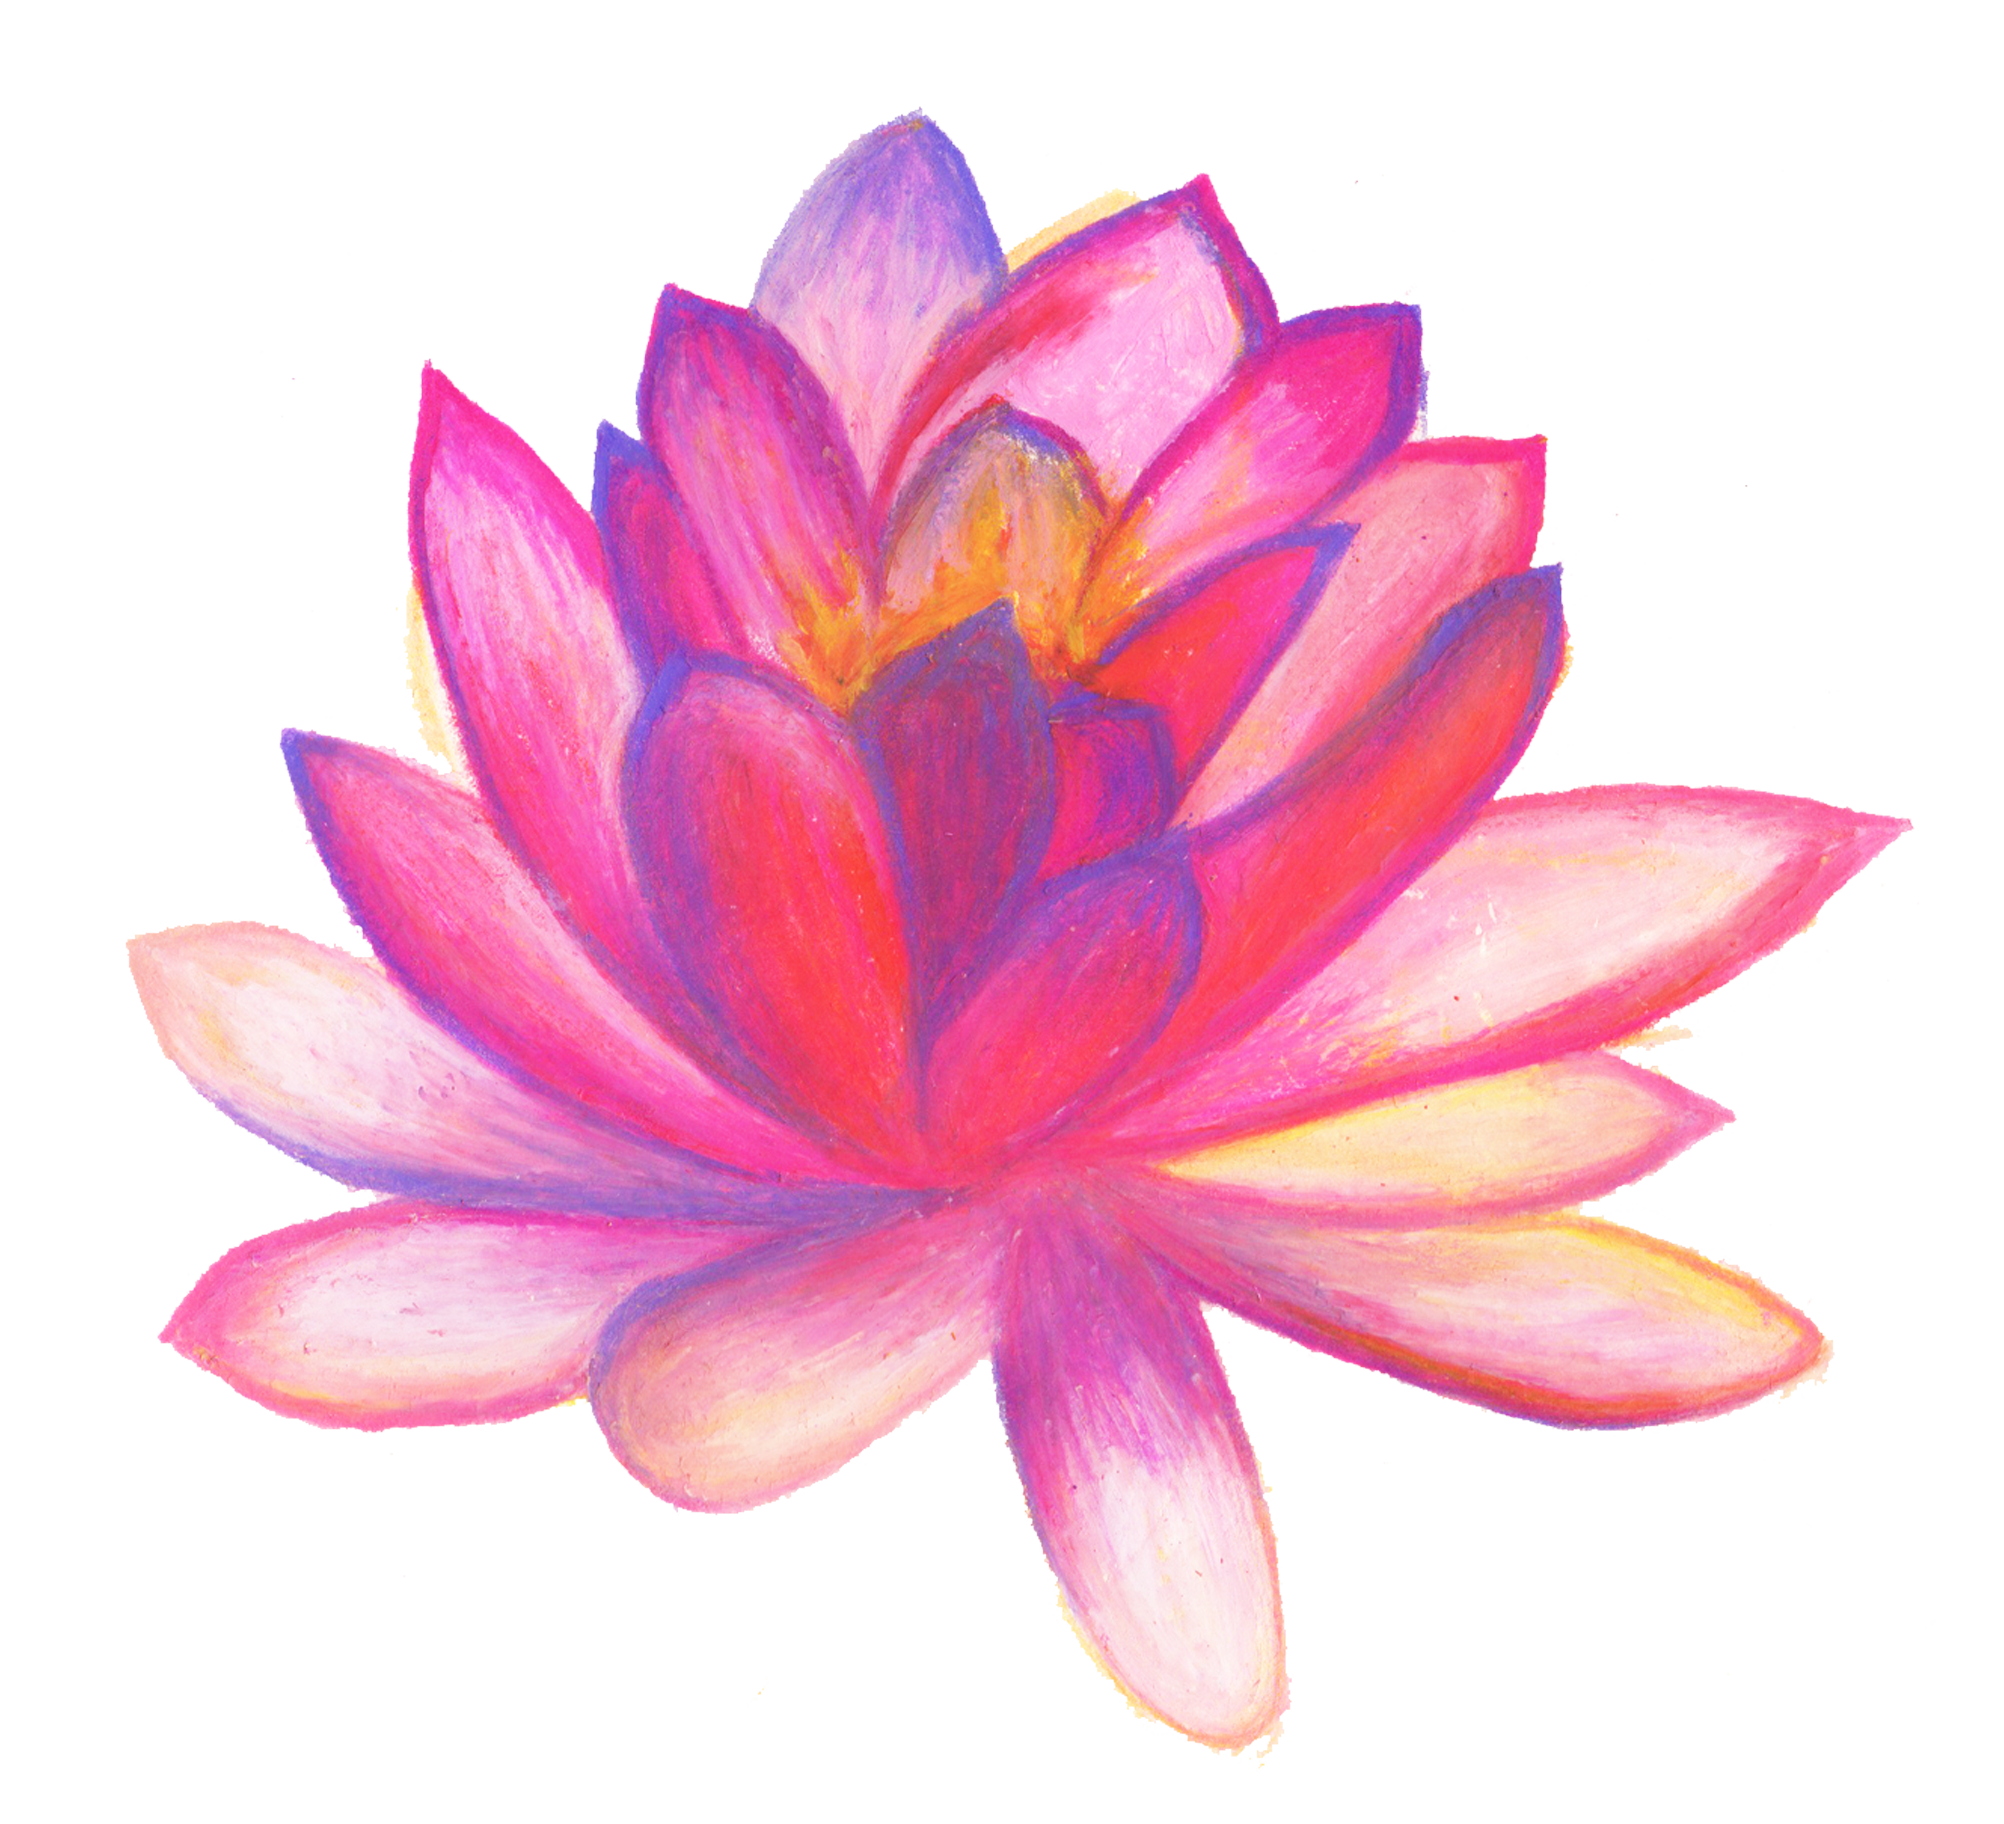 Poster hand flower with. Drawn flowers png image free download